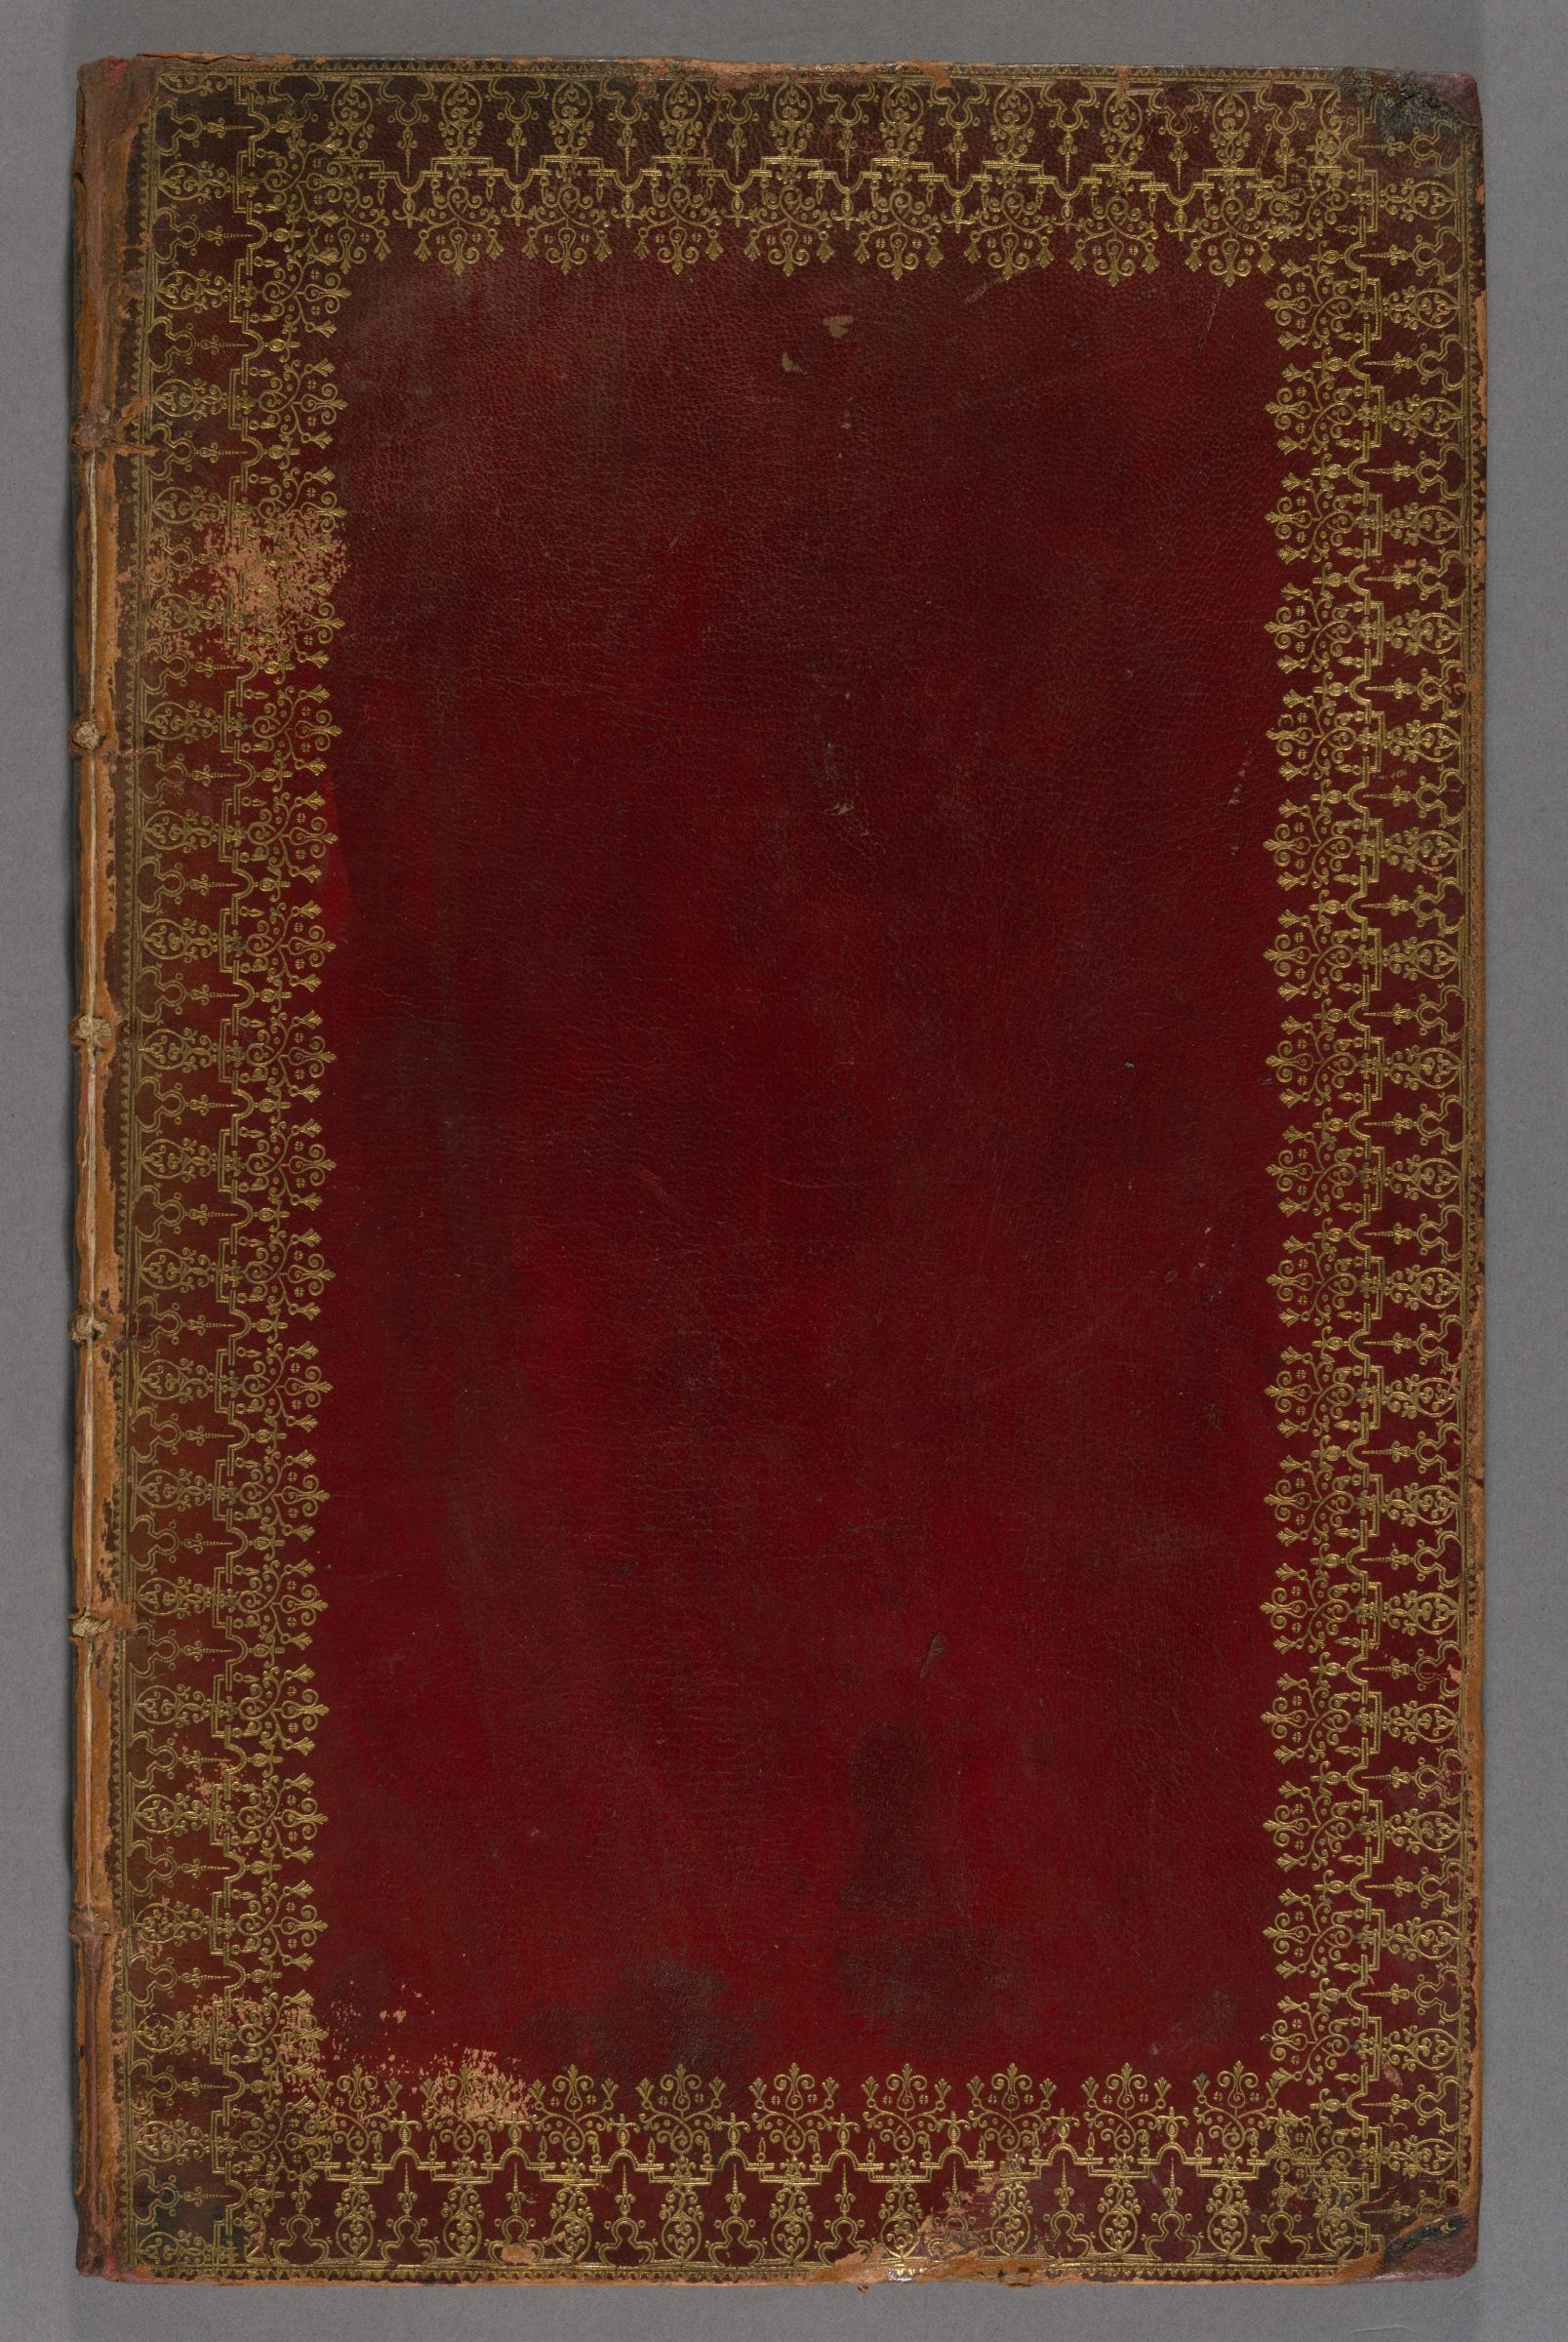 The  royal charter of King Charles the Second to William Penn, esquire, proprietor of the province of Pennsylvania, 1701